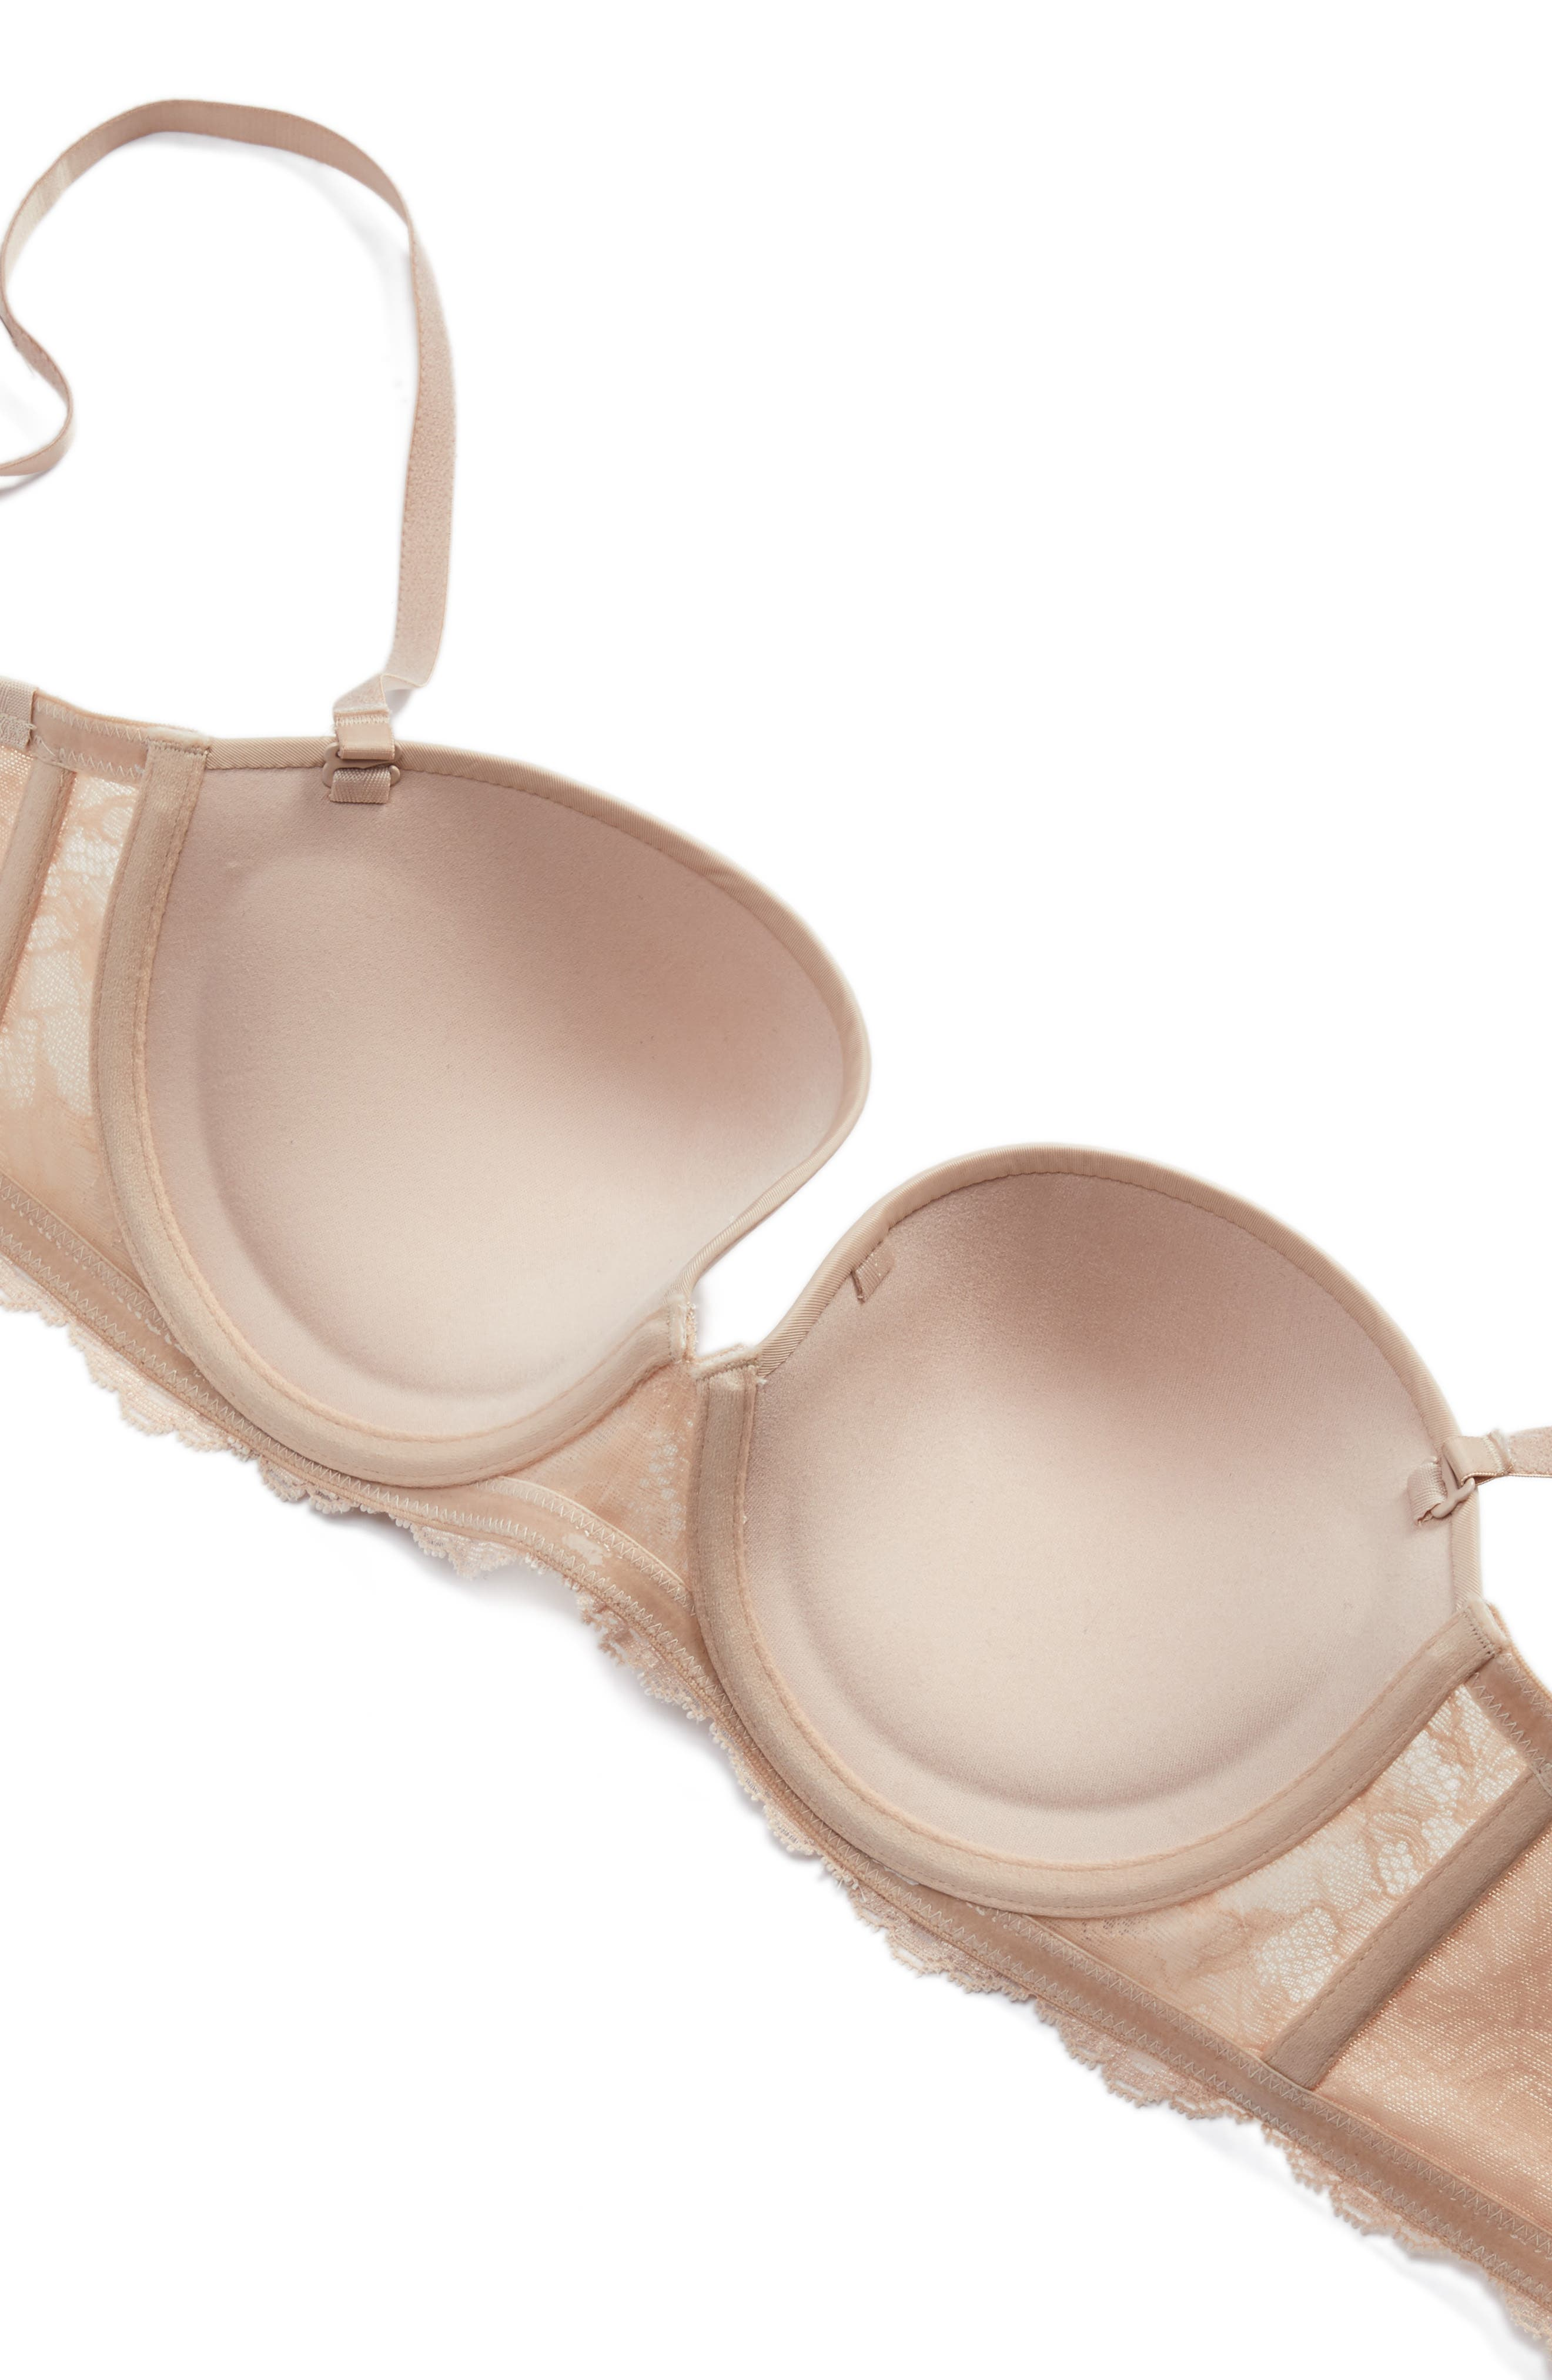 Beautifully Basic Strapless Underwire Bra,                             Alternate thumbnail 6, color,                             Champagne